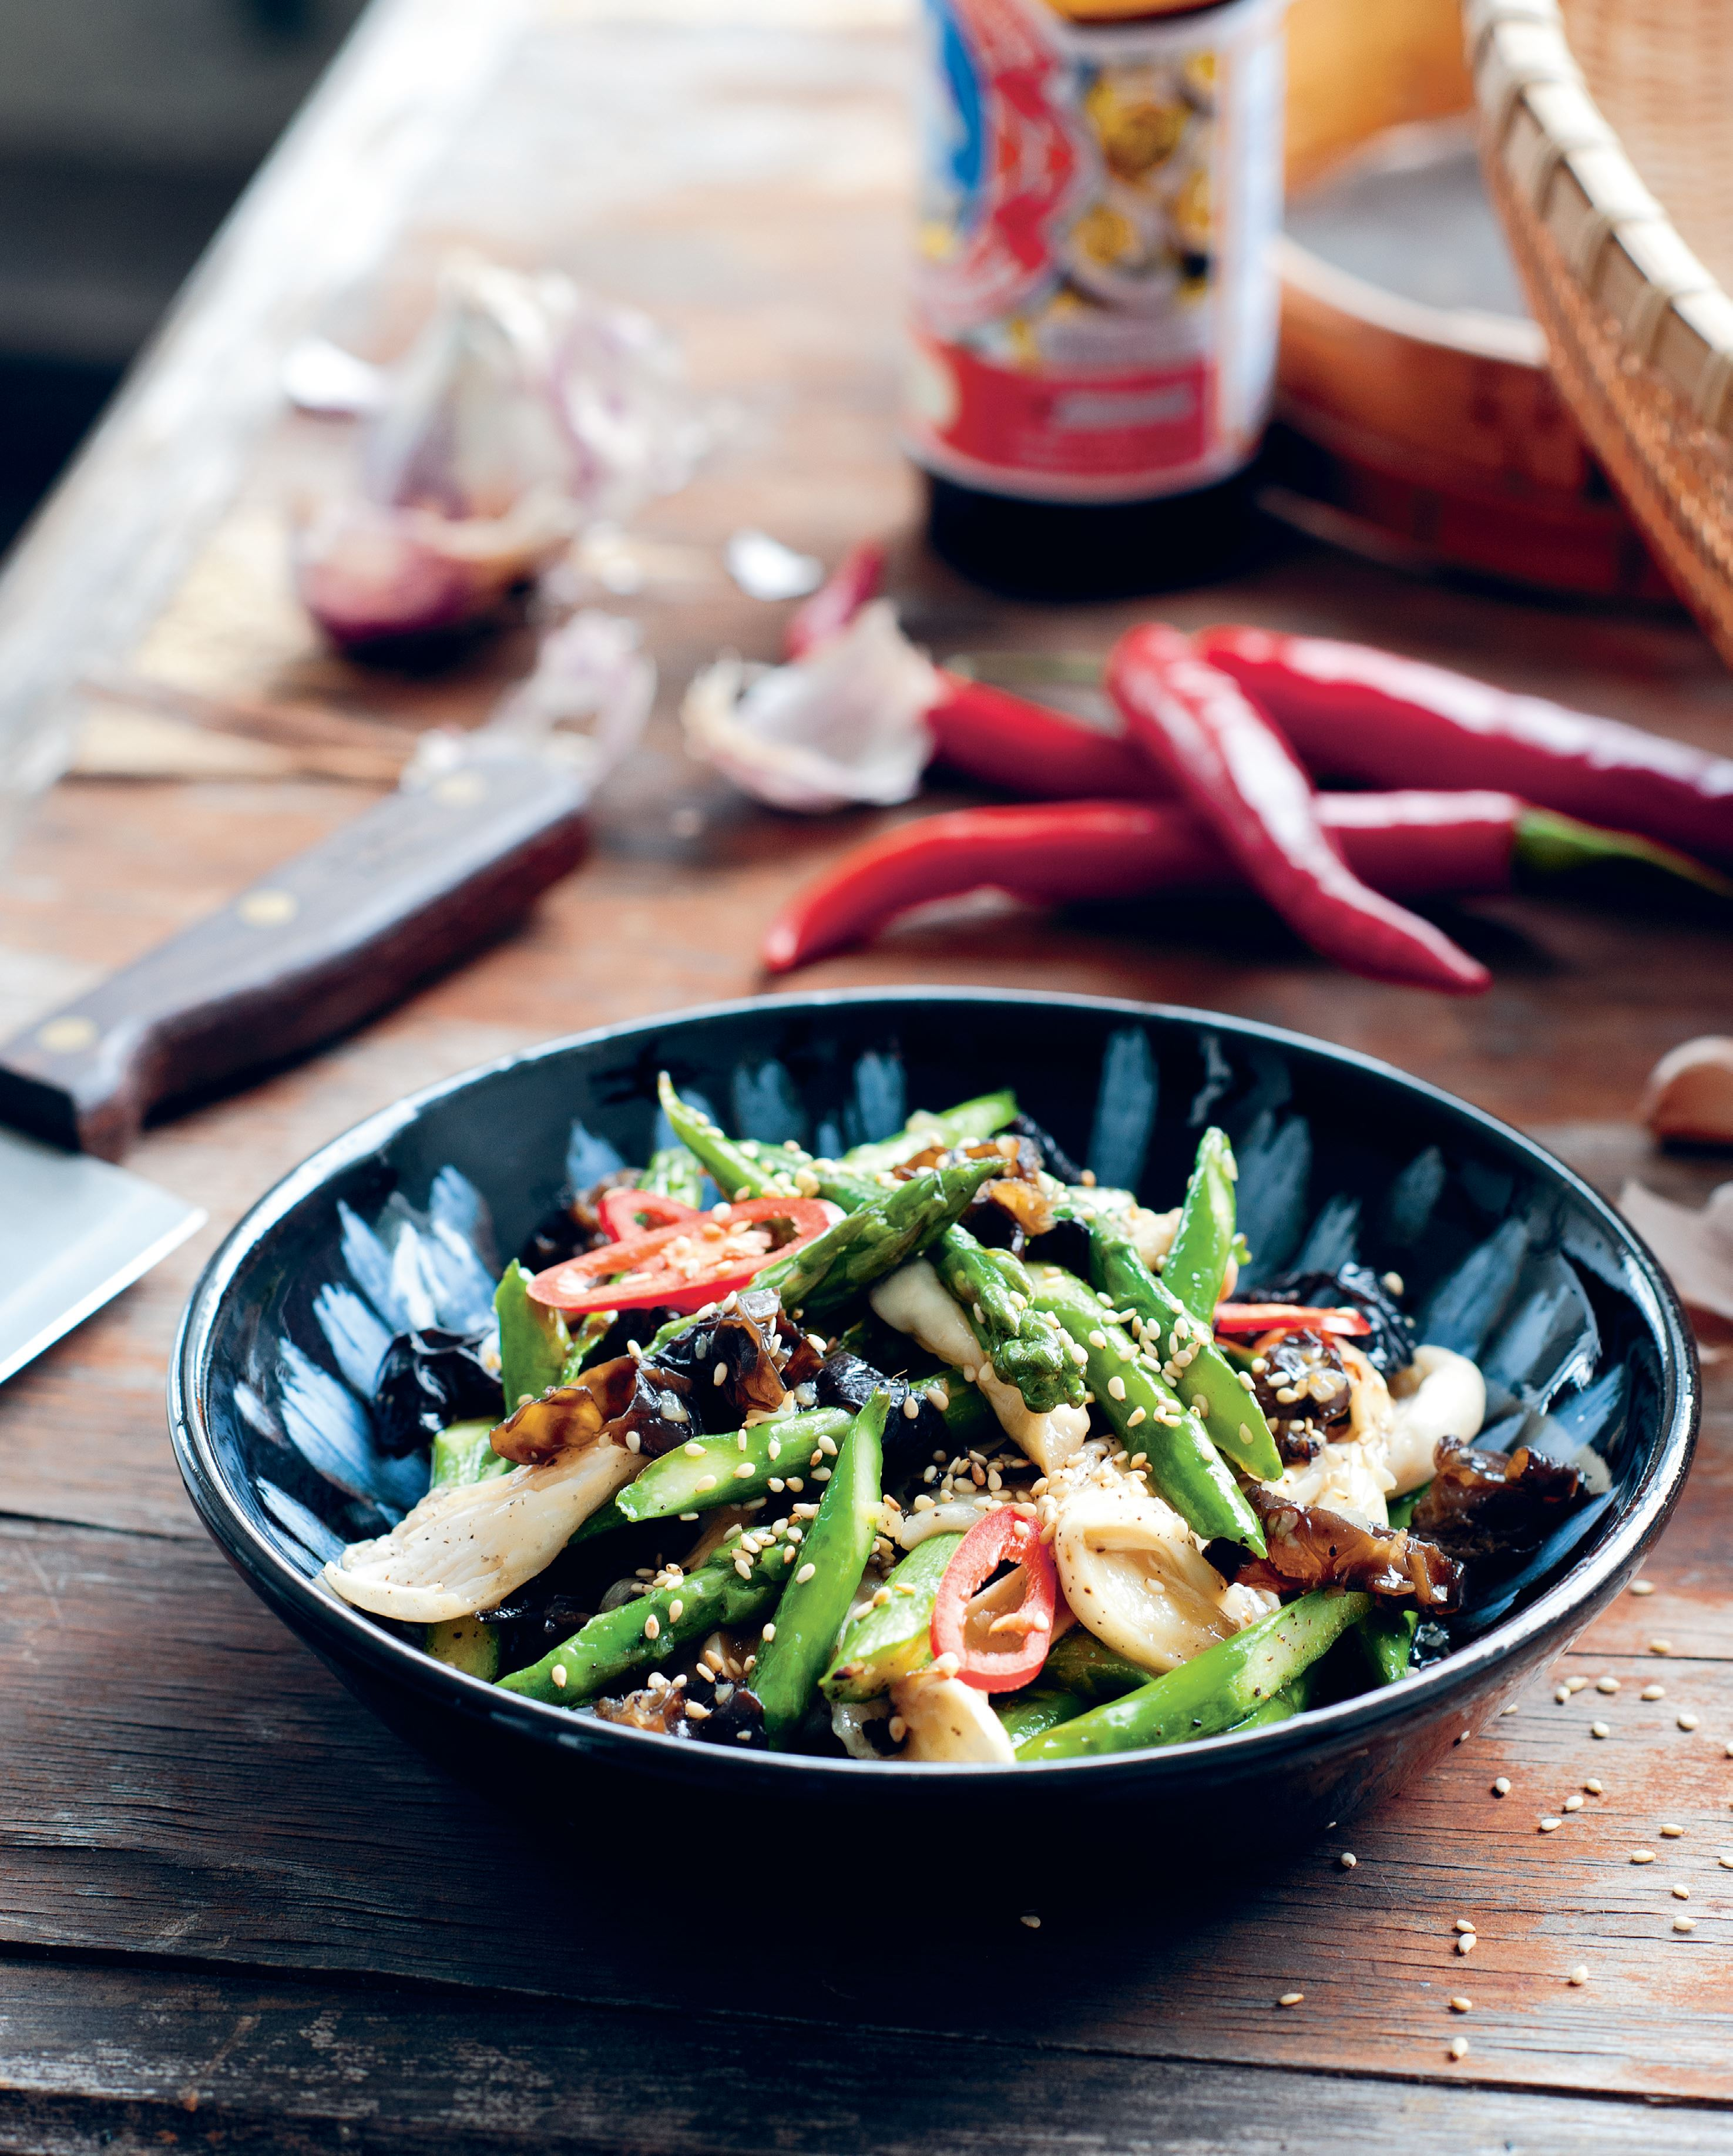 Asparagus wok-tossed with oyster mushrooms